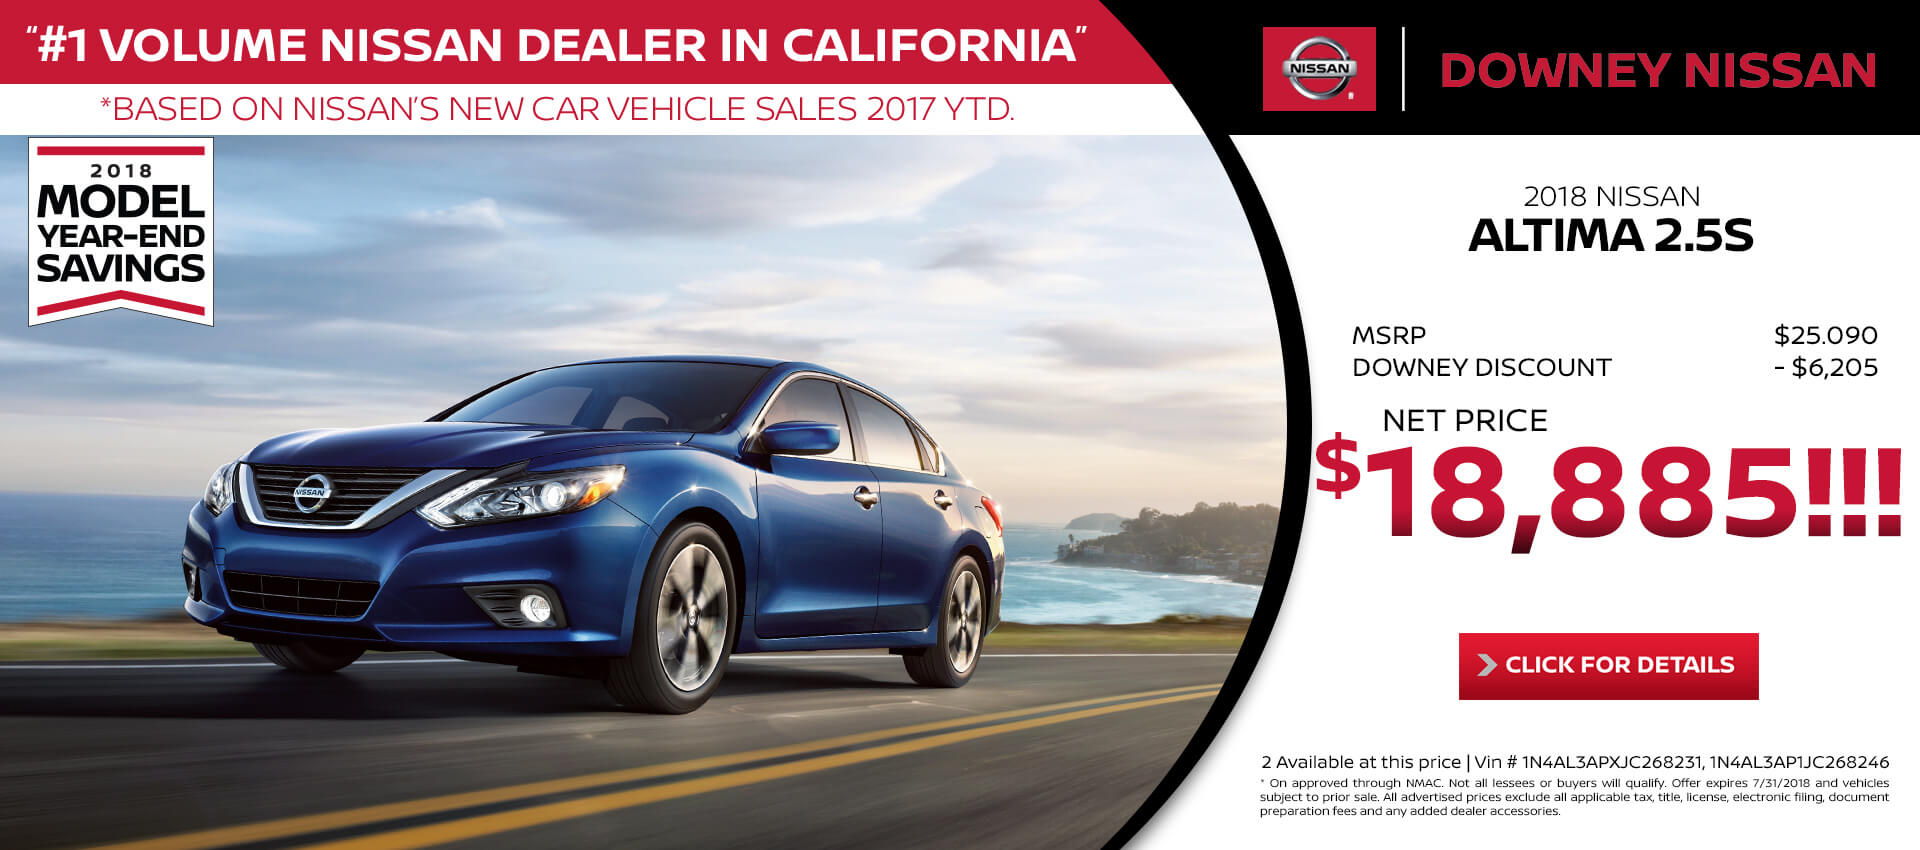 Altima - Purchase for $18,885